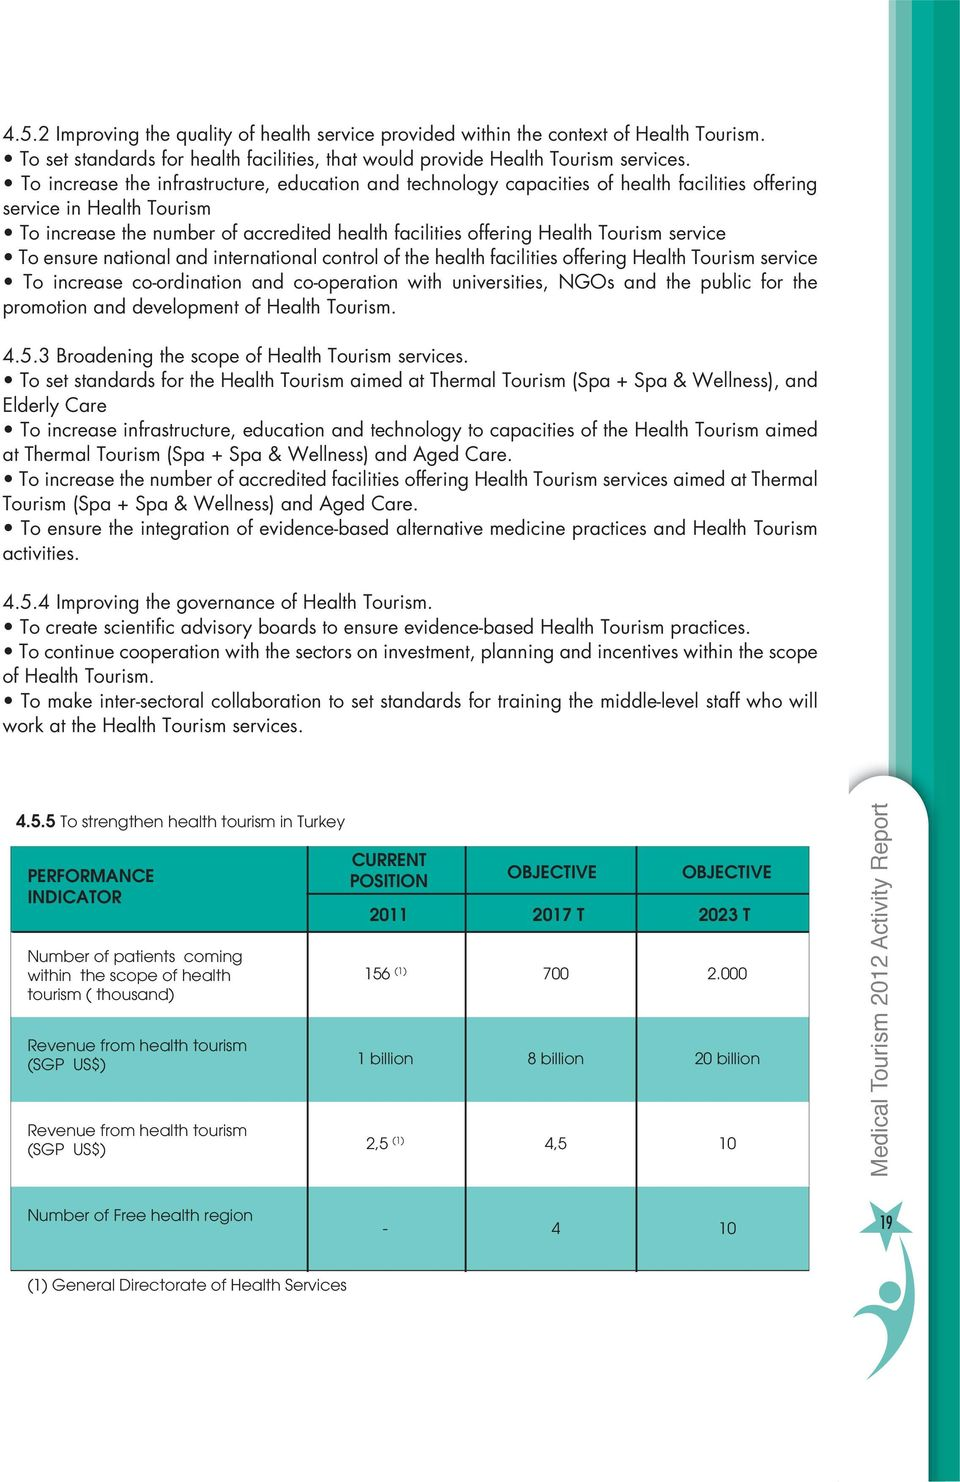 4 Improving the governance of Health Tourism. of Health Tourism. work at the Health Tourism services. 4.5.